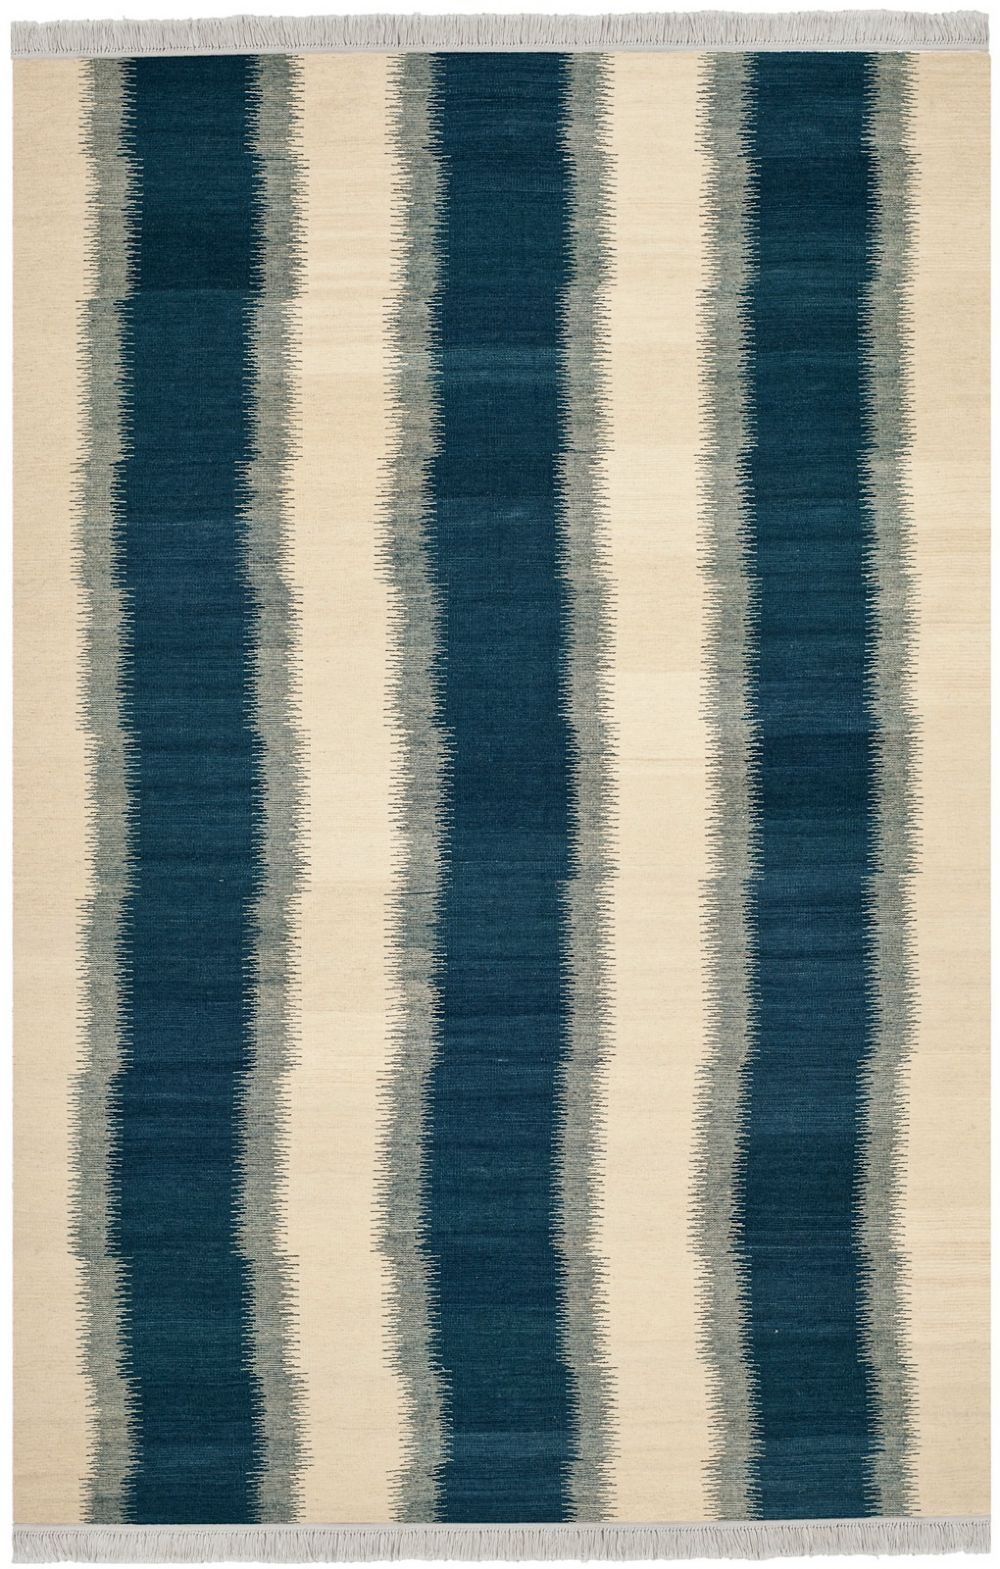 safavieh navajo kilim contemporary area rug collection